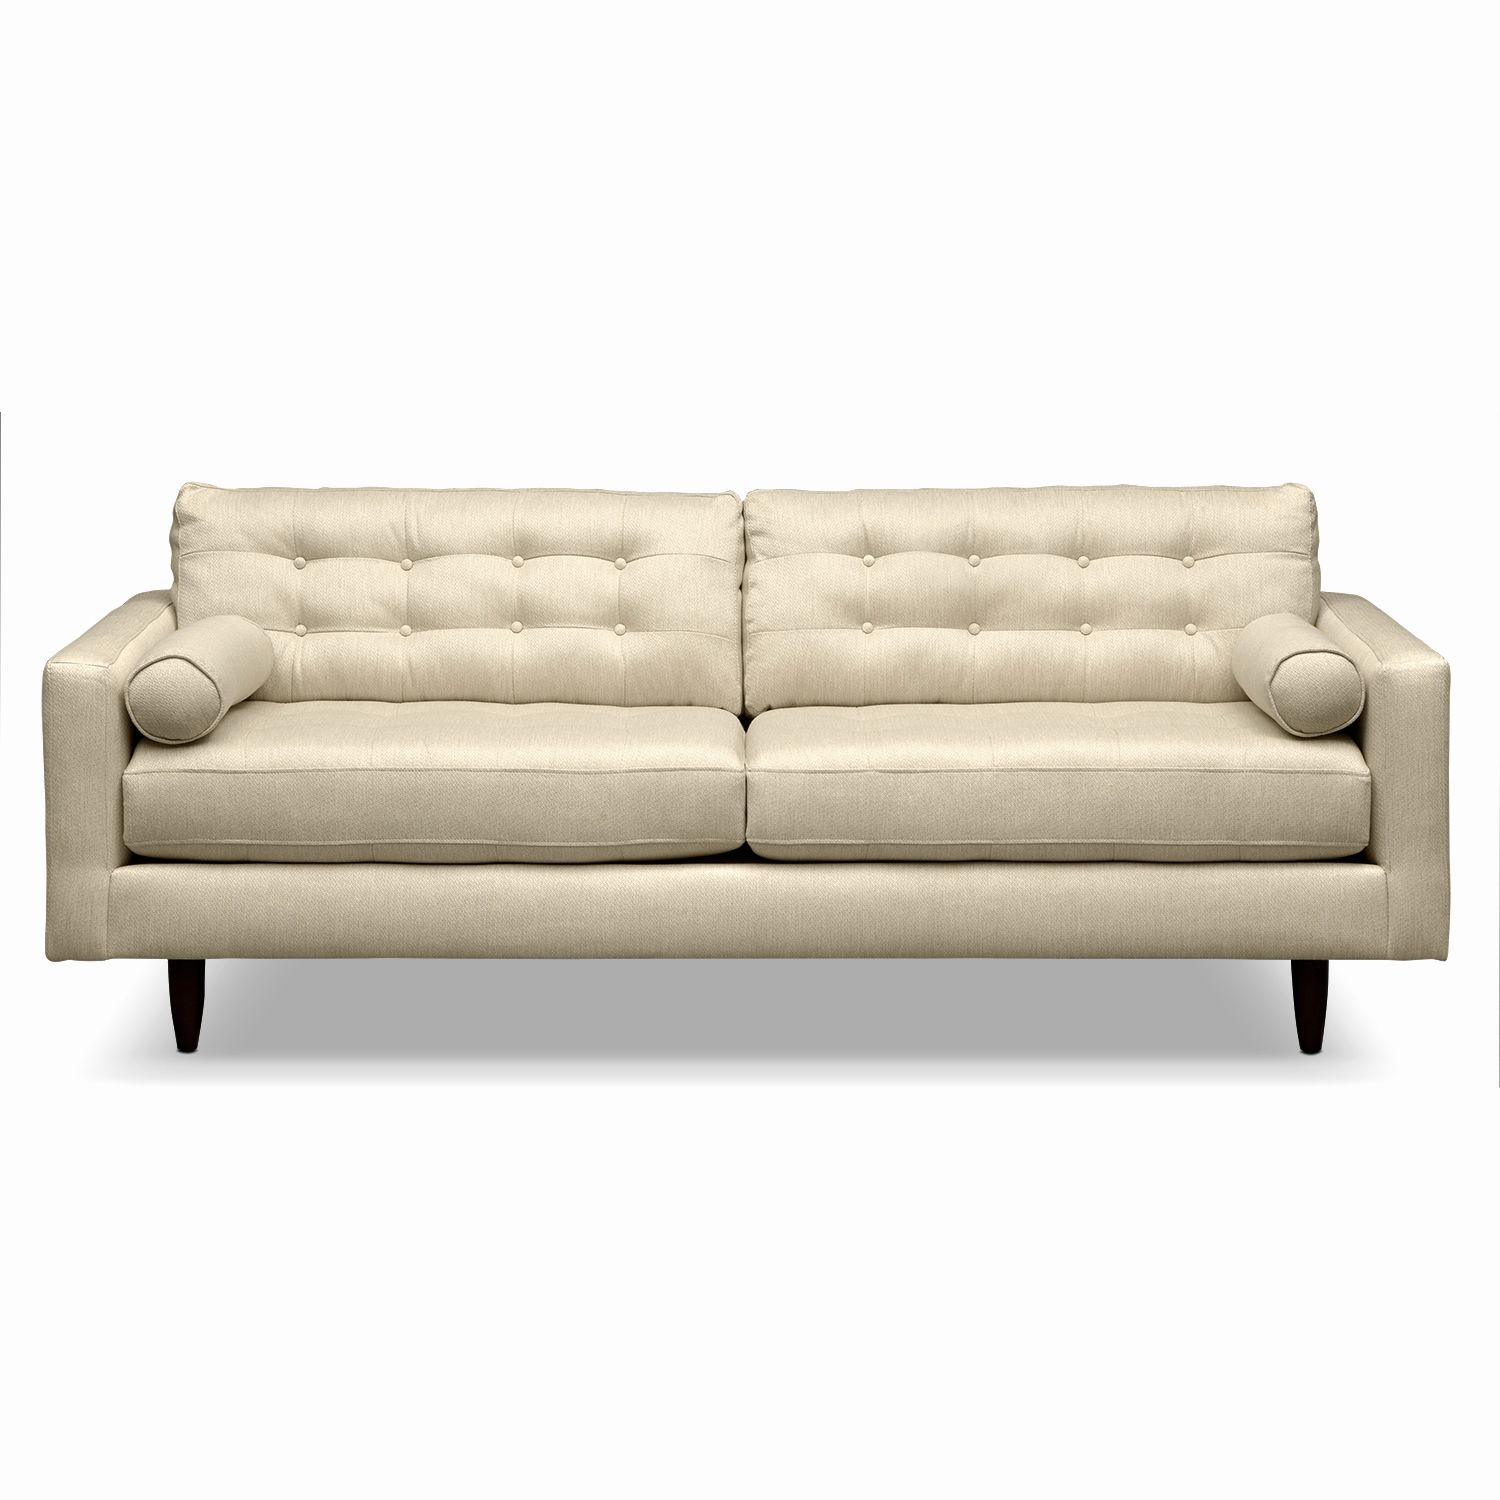 New Modern Faux Leather Sofa Photos Inspirational Fancy White 25 About Remodel Sofas And Couches